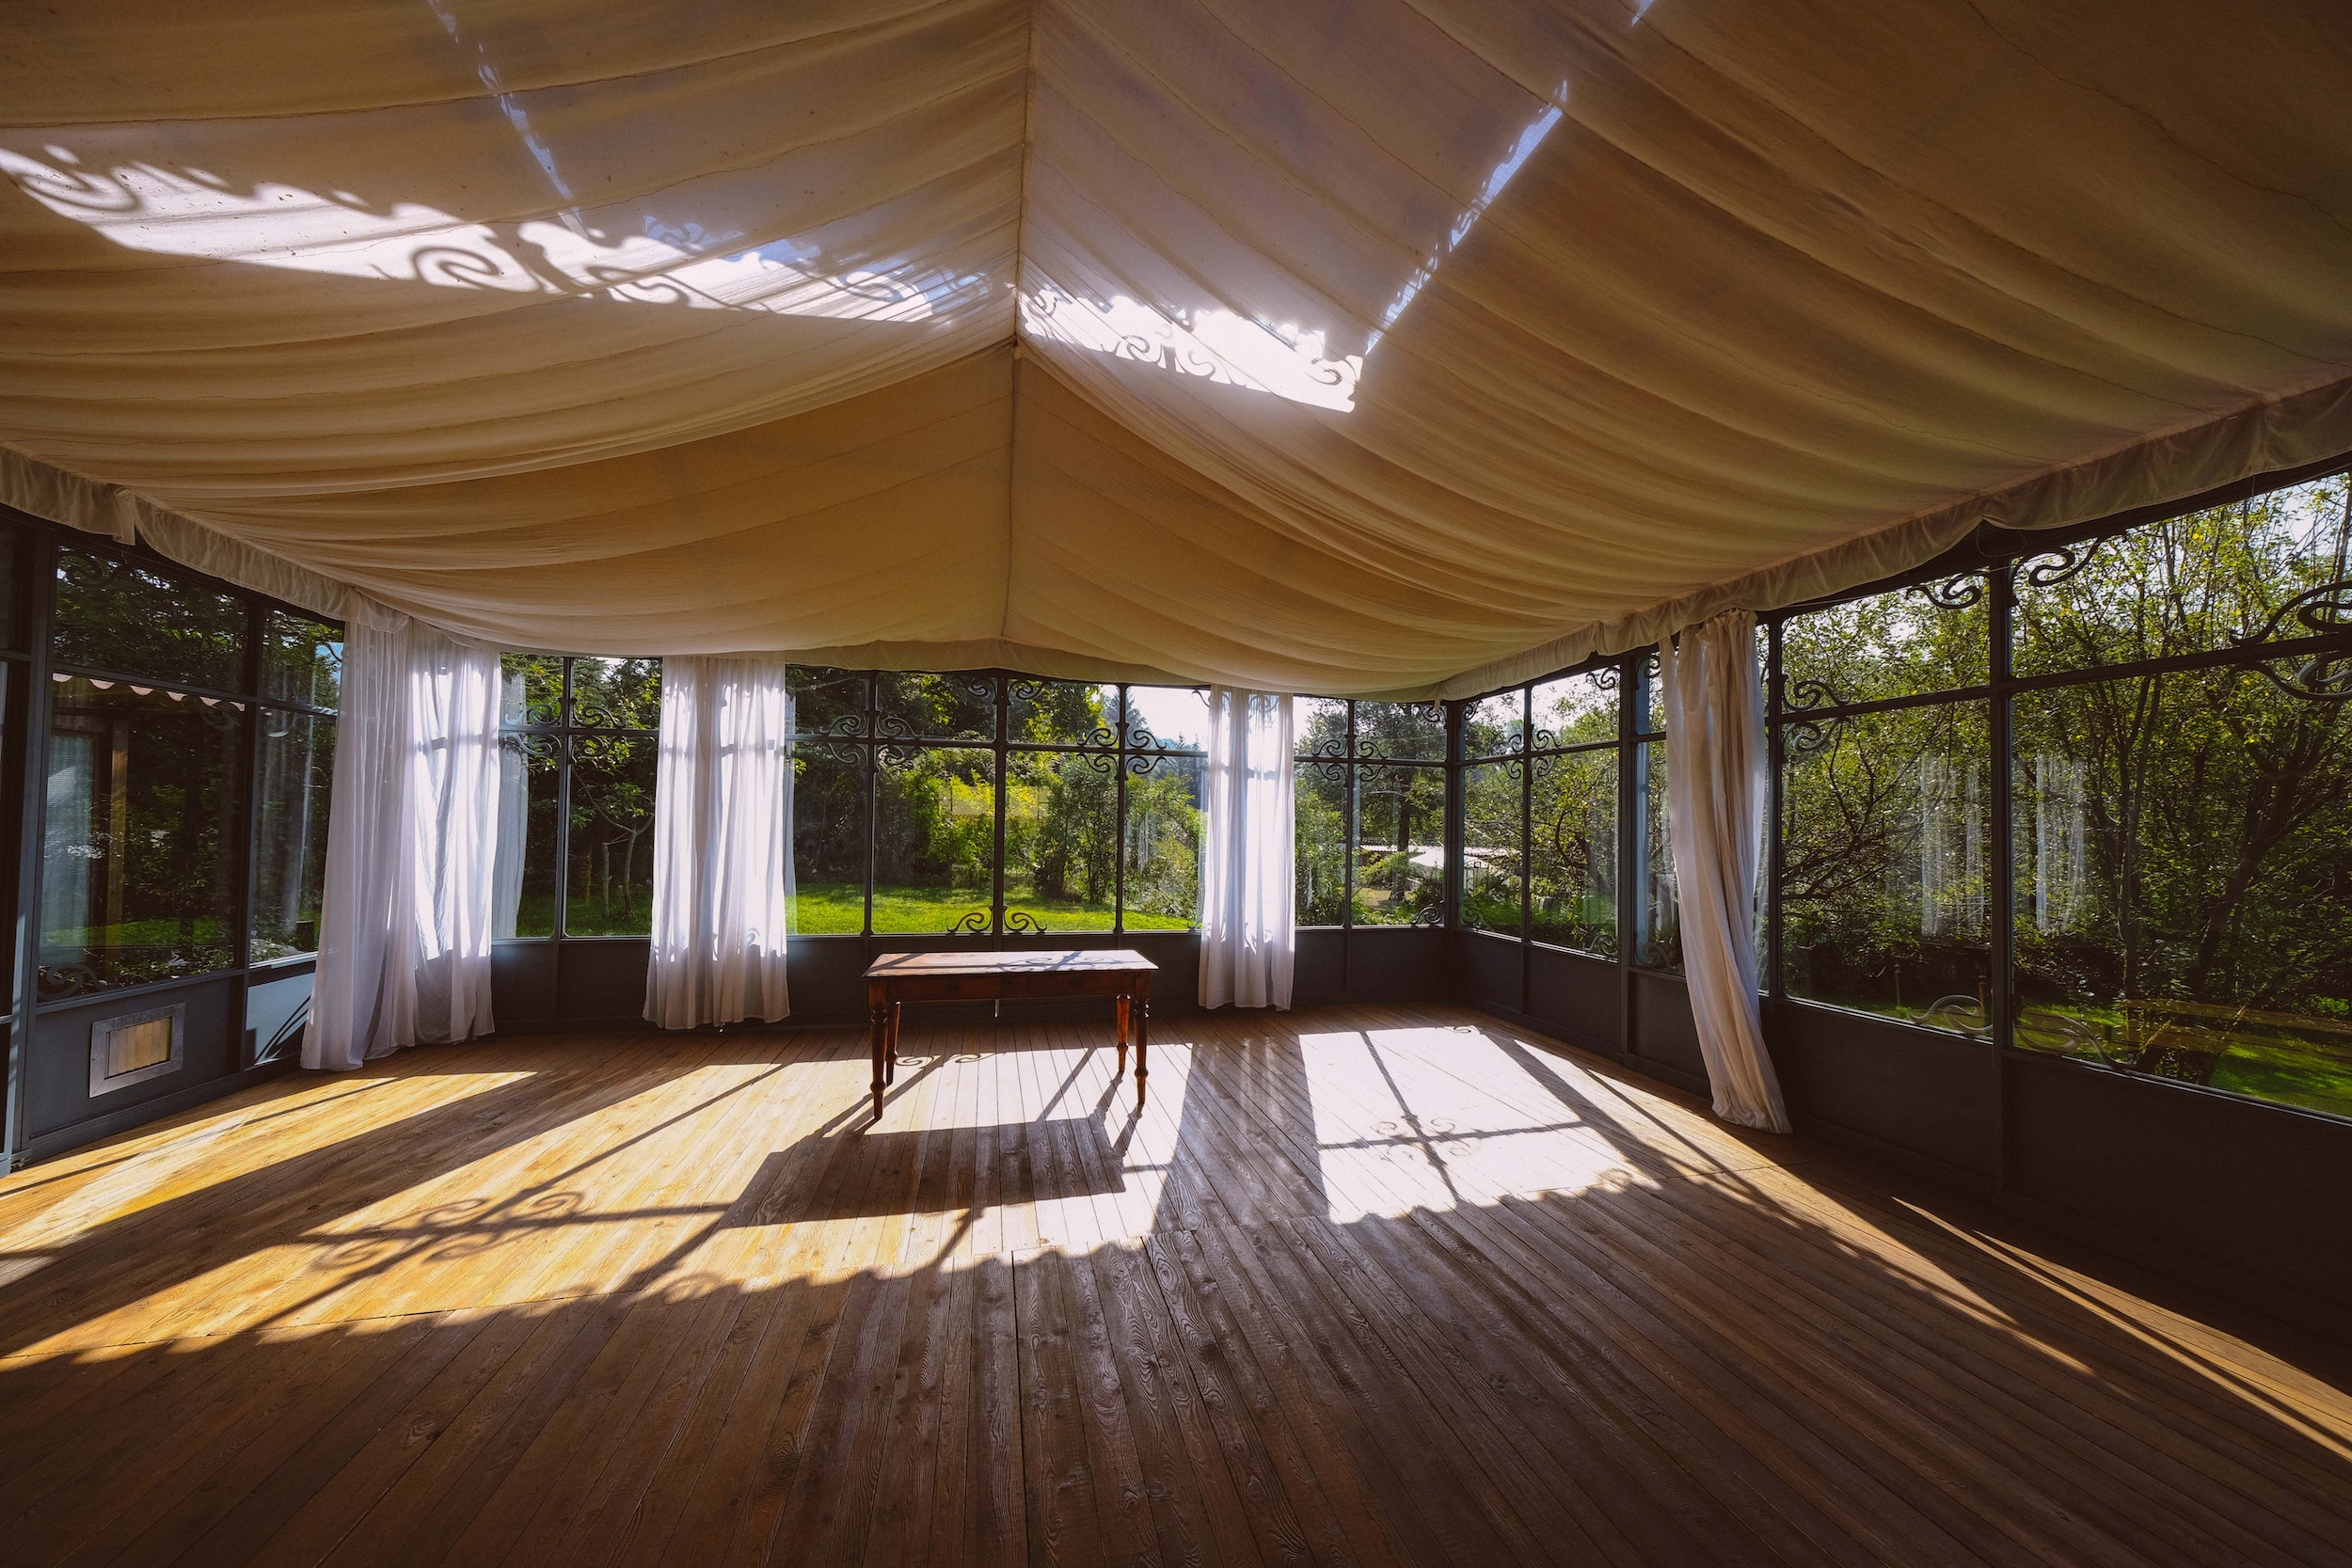 Legal formalities when erecting tent halls